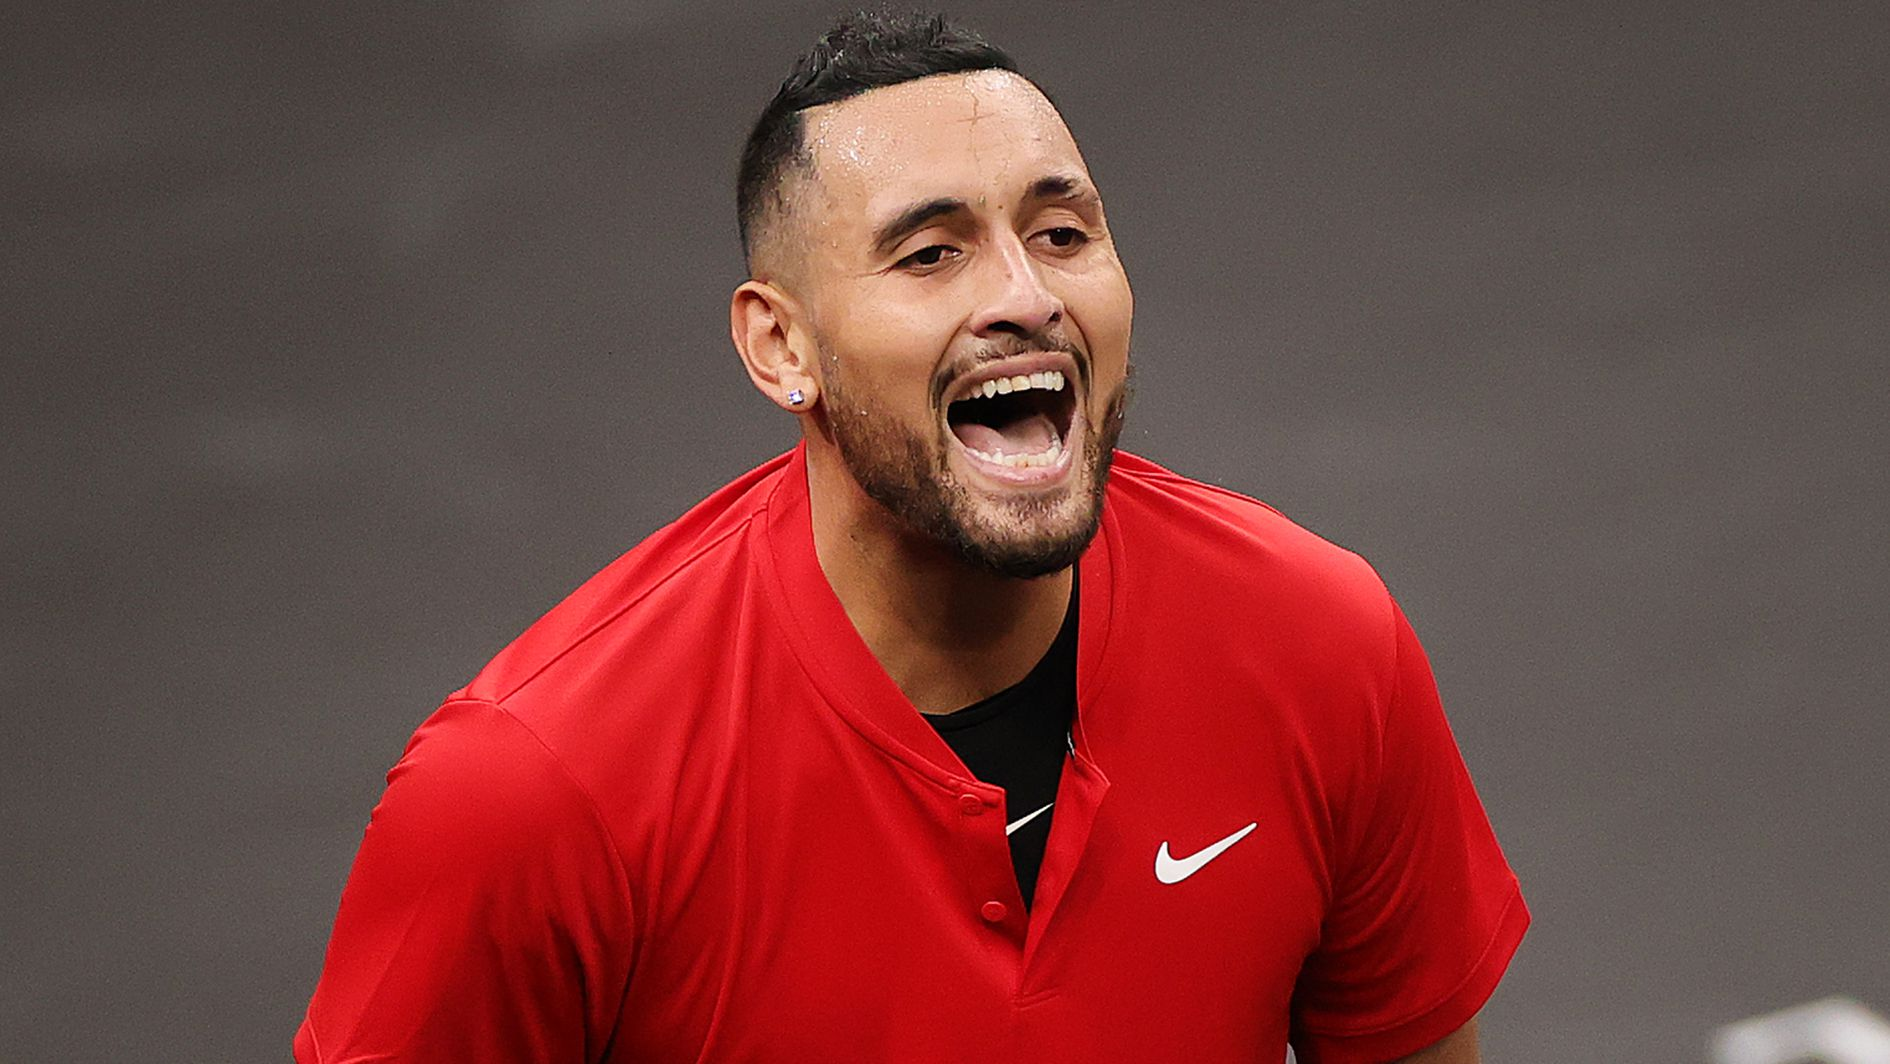 Nick Kyrgios of Team World reacts to a shot against Stefanos Tsitsipas of Team Europe during the fifth match during Day 2 of the 2021 Laver Cup at TD Garden.